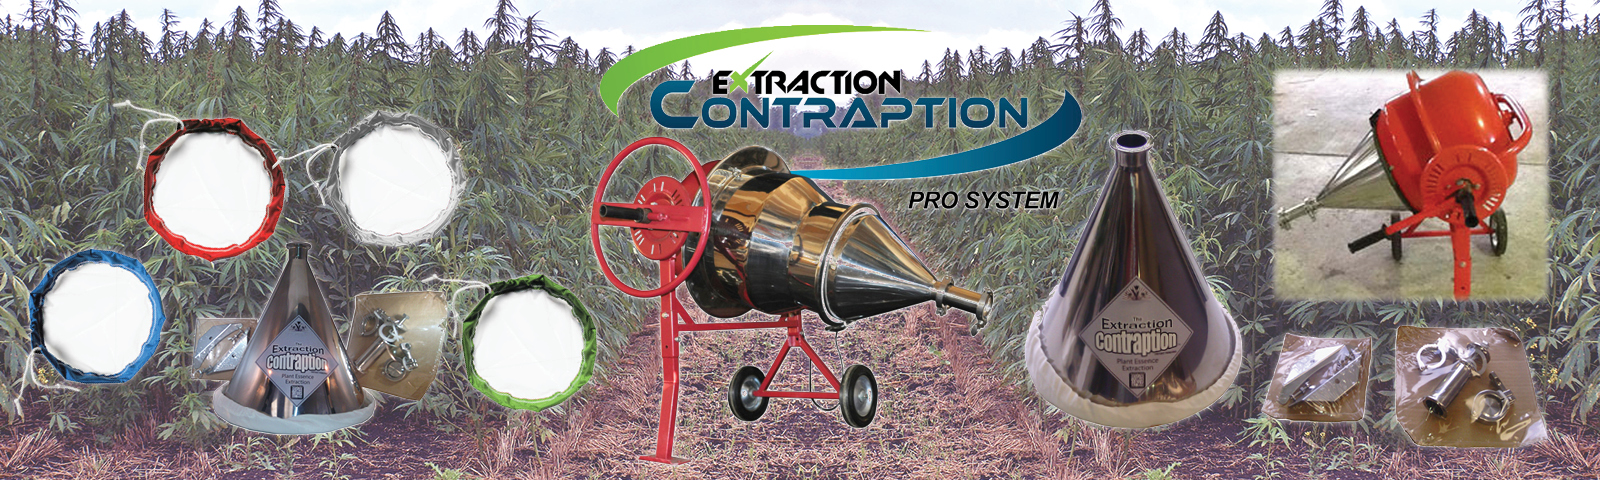 Extraction Contraption CO2 Plant Essence Extractor